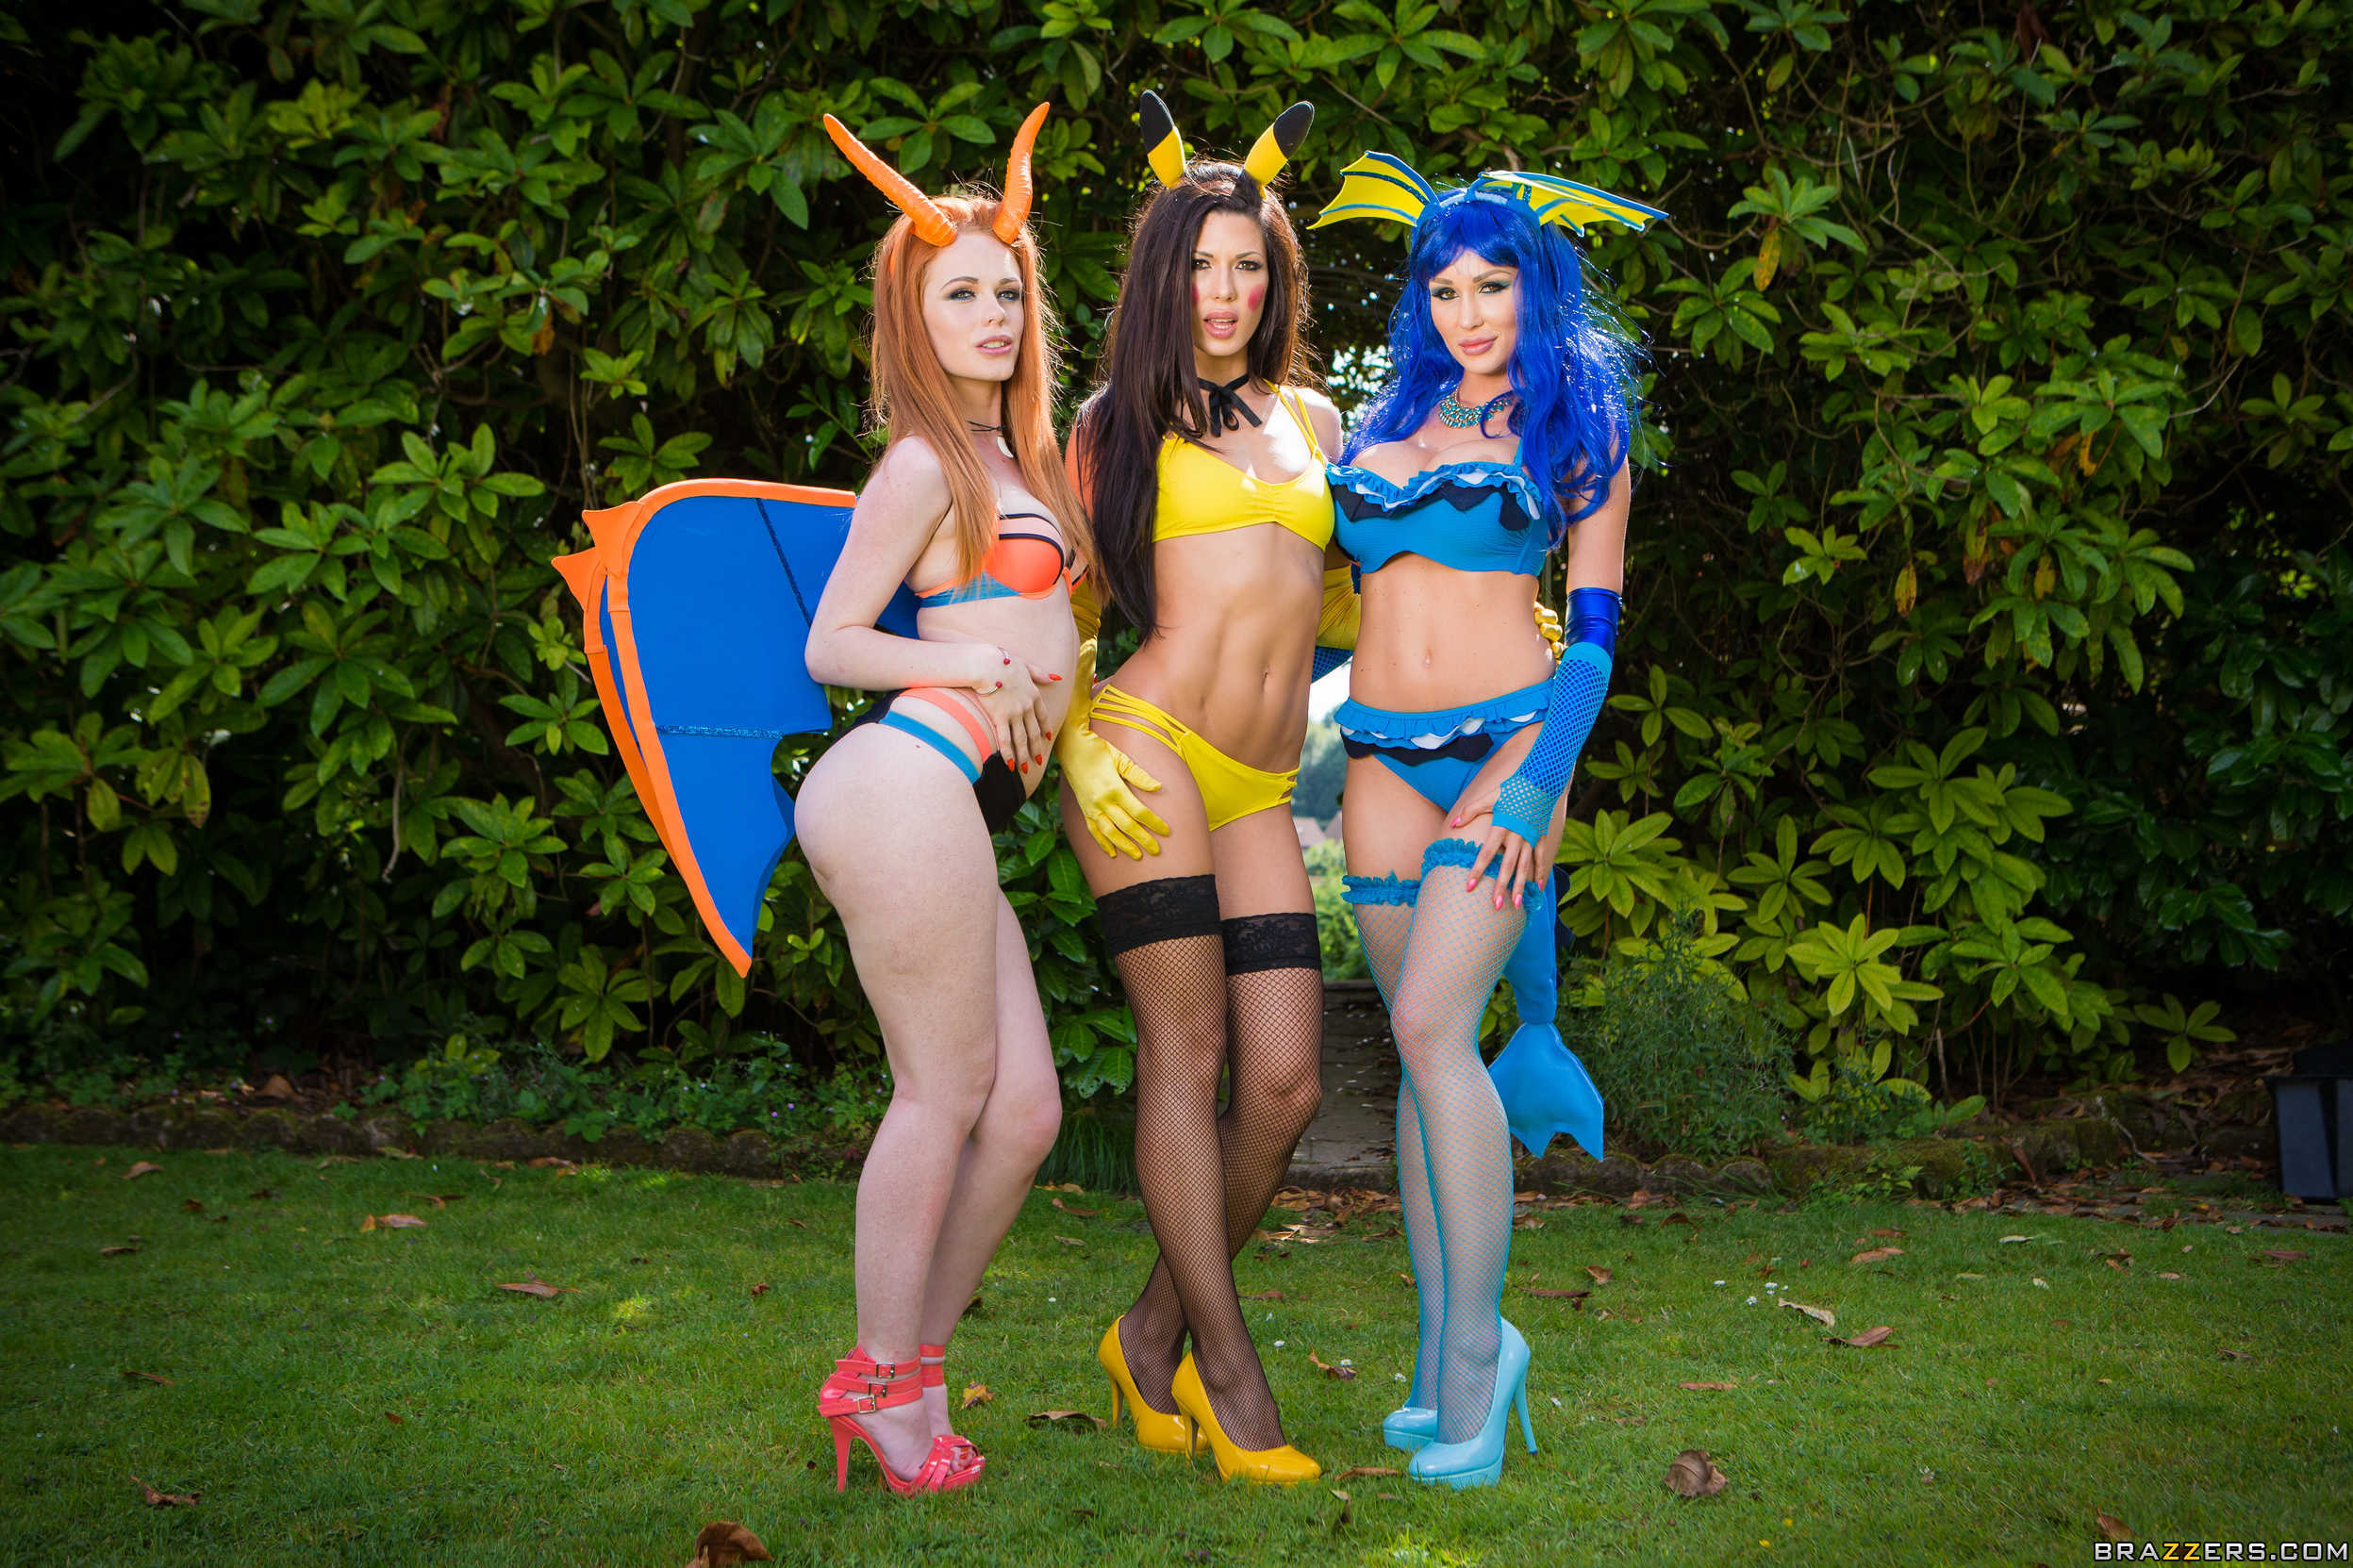 Orgía imperdible con tres chicas cosplayers calientes